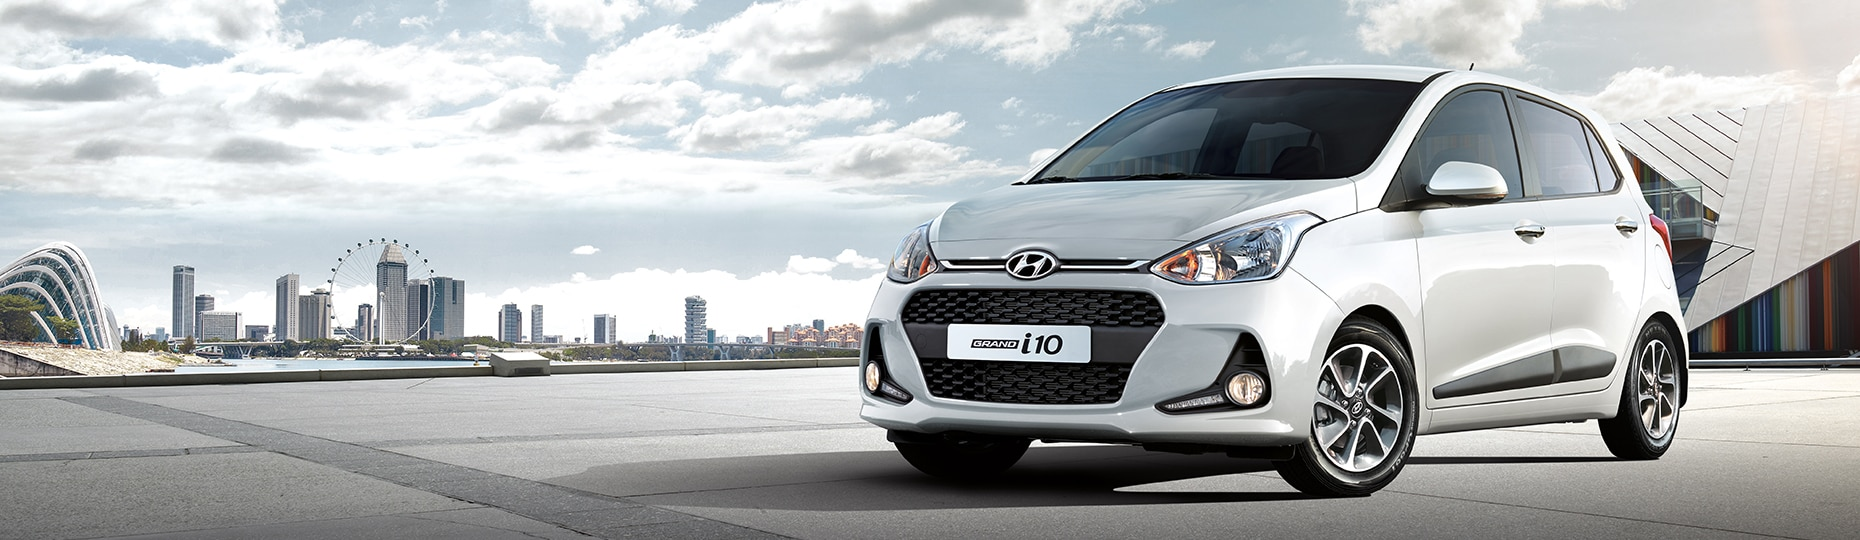 Hyundai Grand i10 commodité technologies climat air conditionné confort Hyundai Maroc